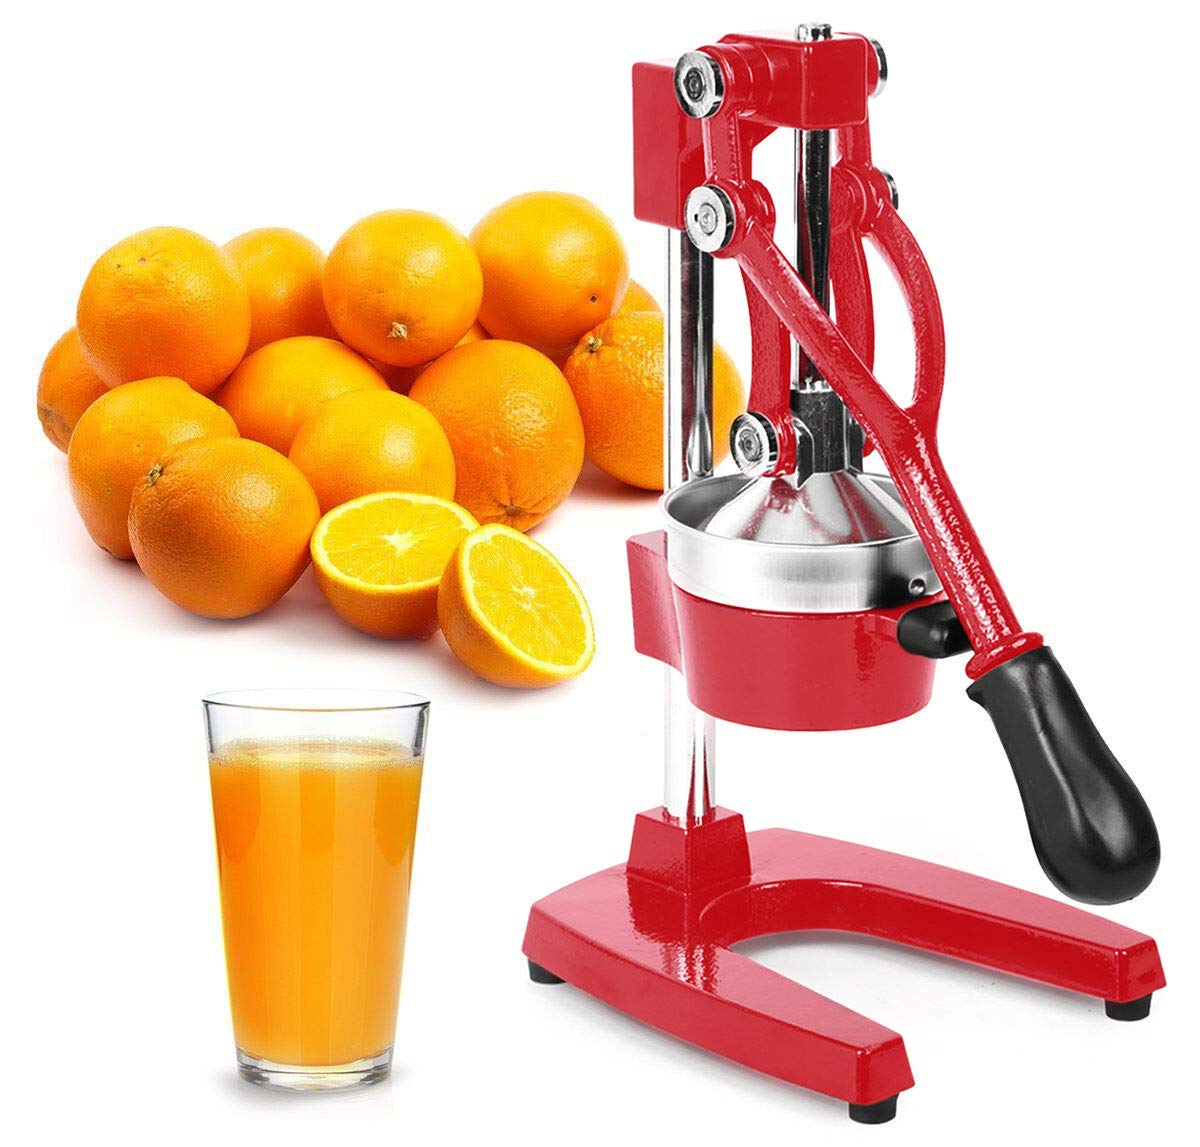 Zulay Professional Citrus Juicer - Manual Citrus Press and Orange Squeezer - Metal Lemon Squeezer - Premium Quality Heavy Duty Manual Orange Juicer and Lime Squeezer Press Stand, Red